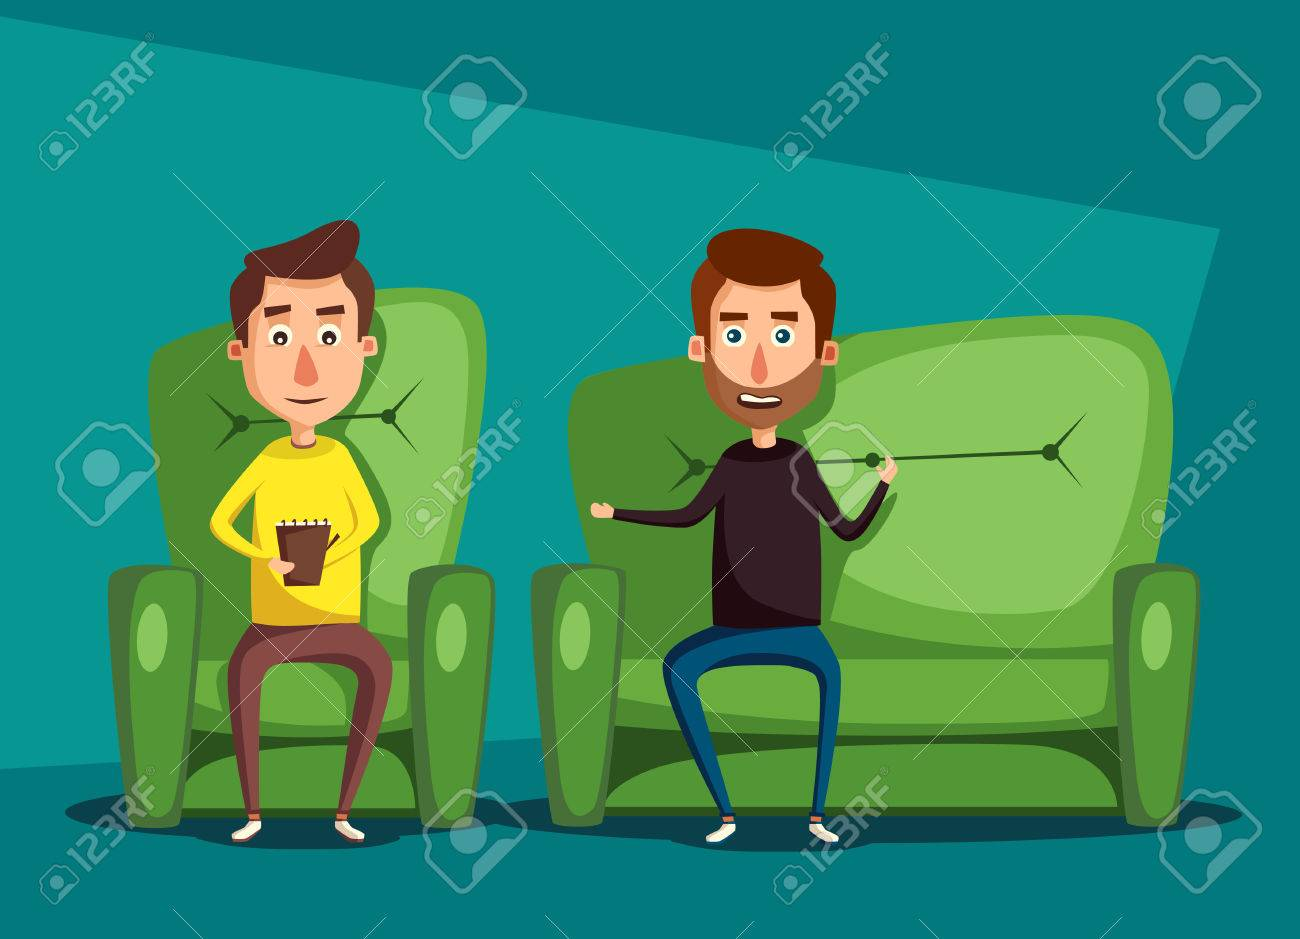 Patient Talking To Psychologist Cartoon Illustration Psychotherapy